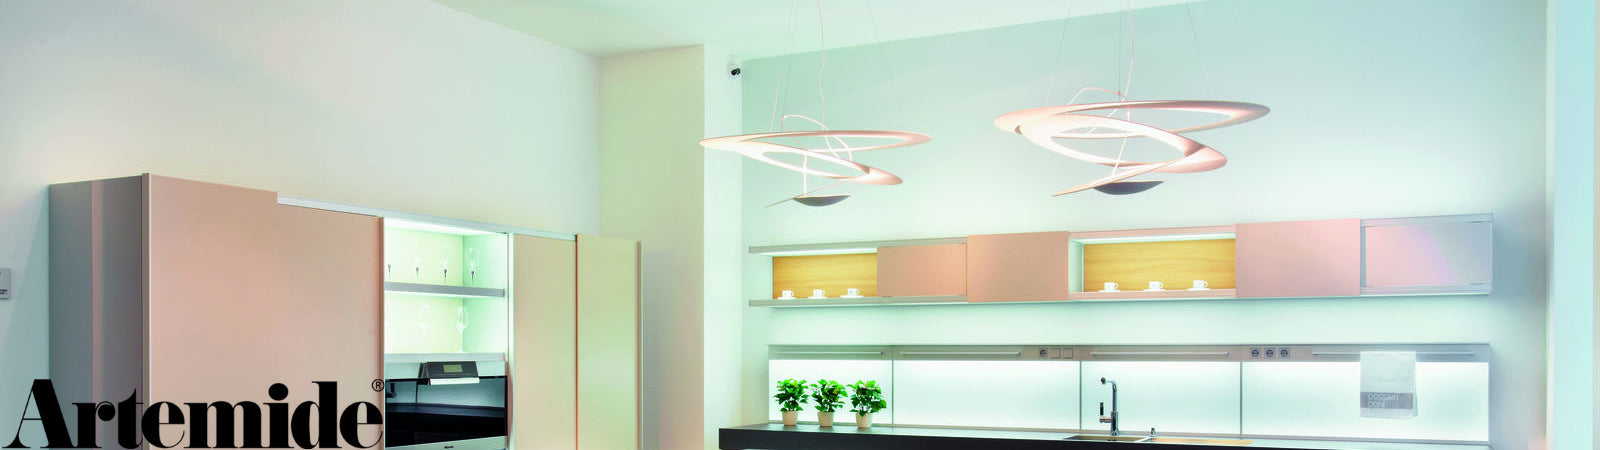 The Pirce Suspension Light from Artemide, available at Sportique.com